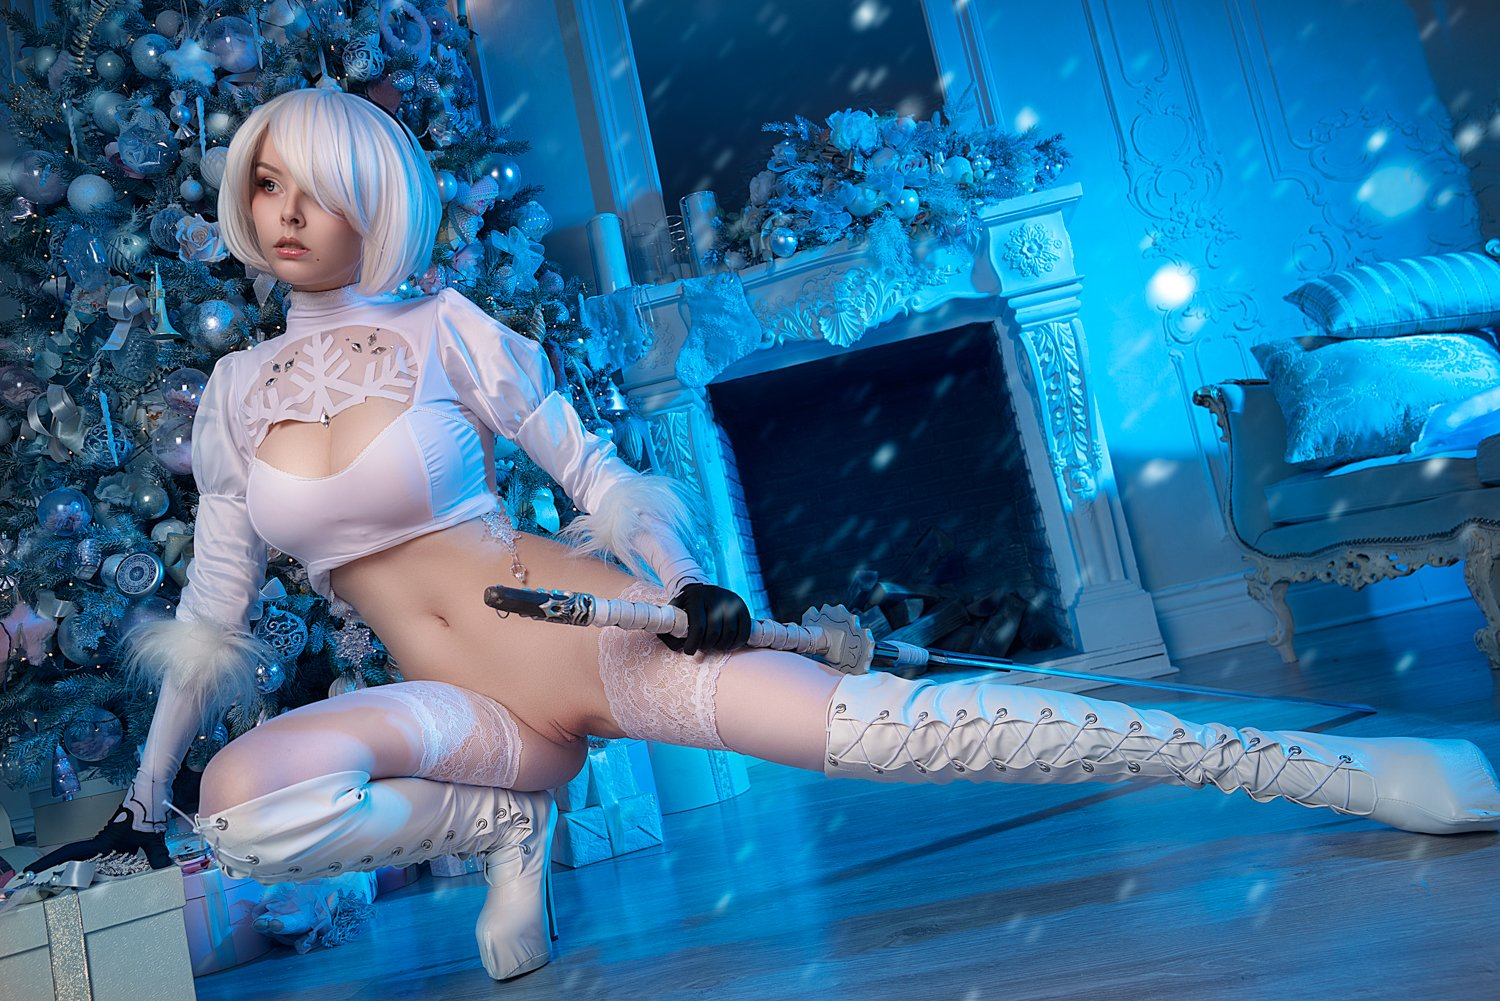 Helly Valentine as 2B nier automata